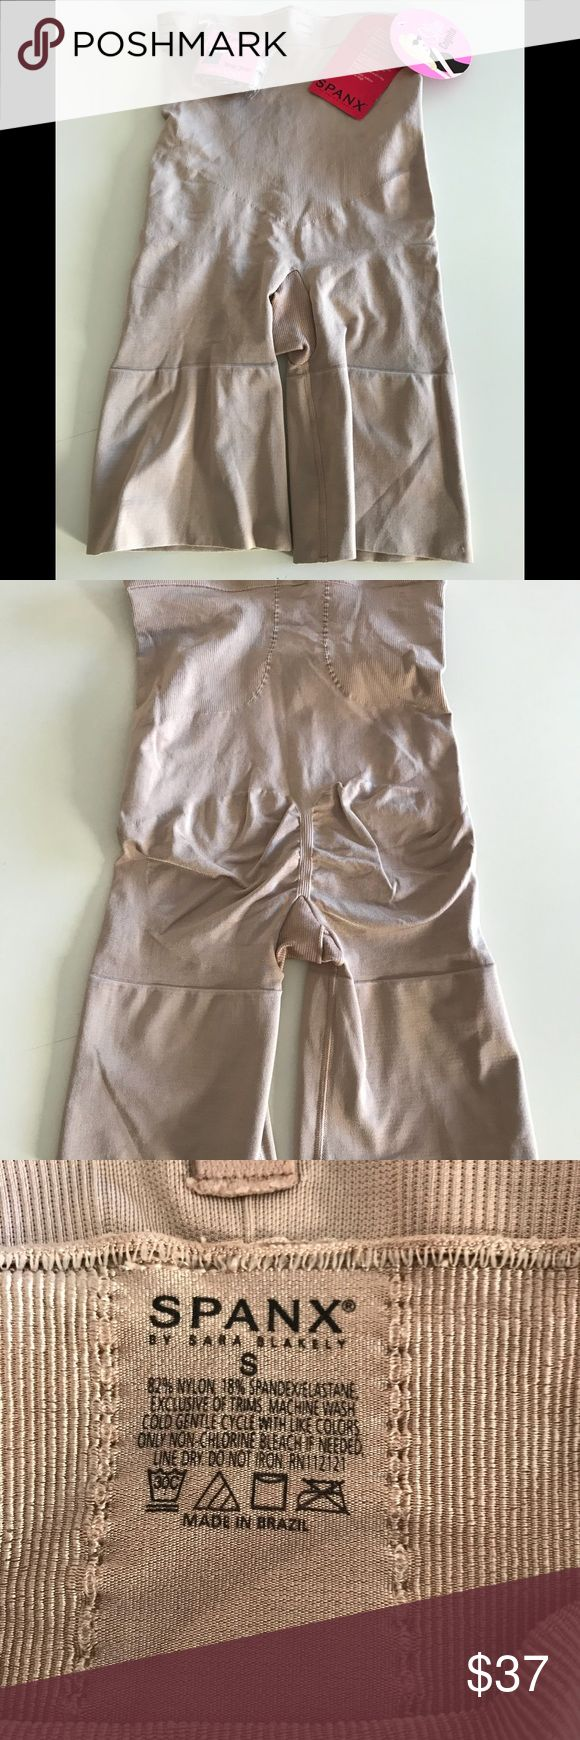 SPANX Shaping Midthigh Bodysuit Size S NWT...nude color...size small...comes with straps so you can wear your own bra...smoke free home. SPANX Intimates & Sleepwear Shapewear